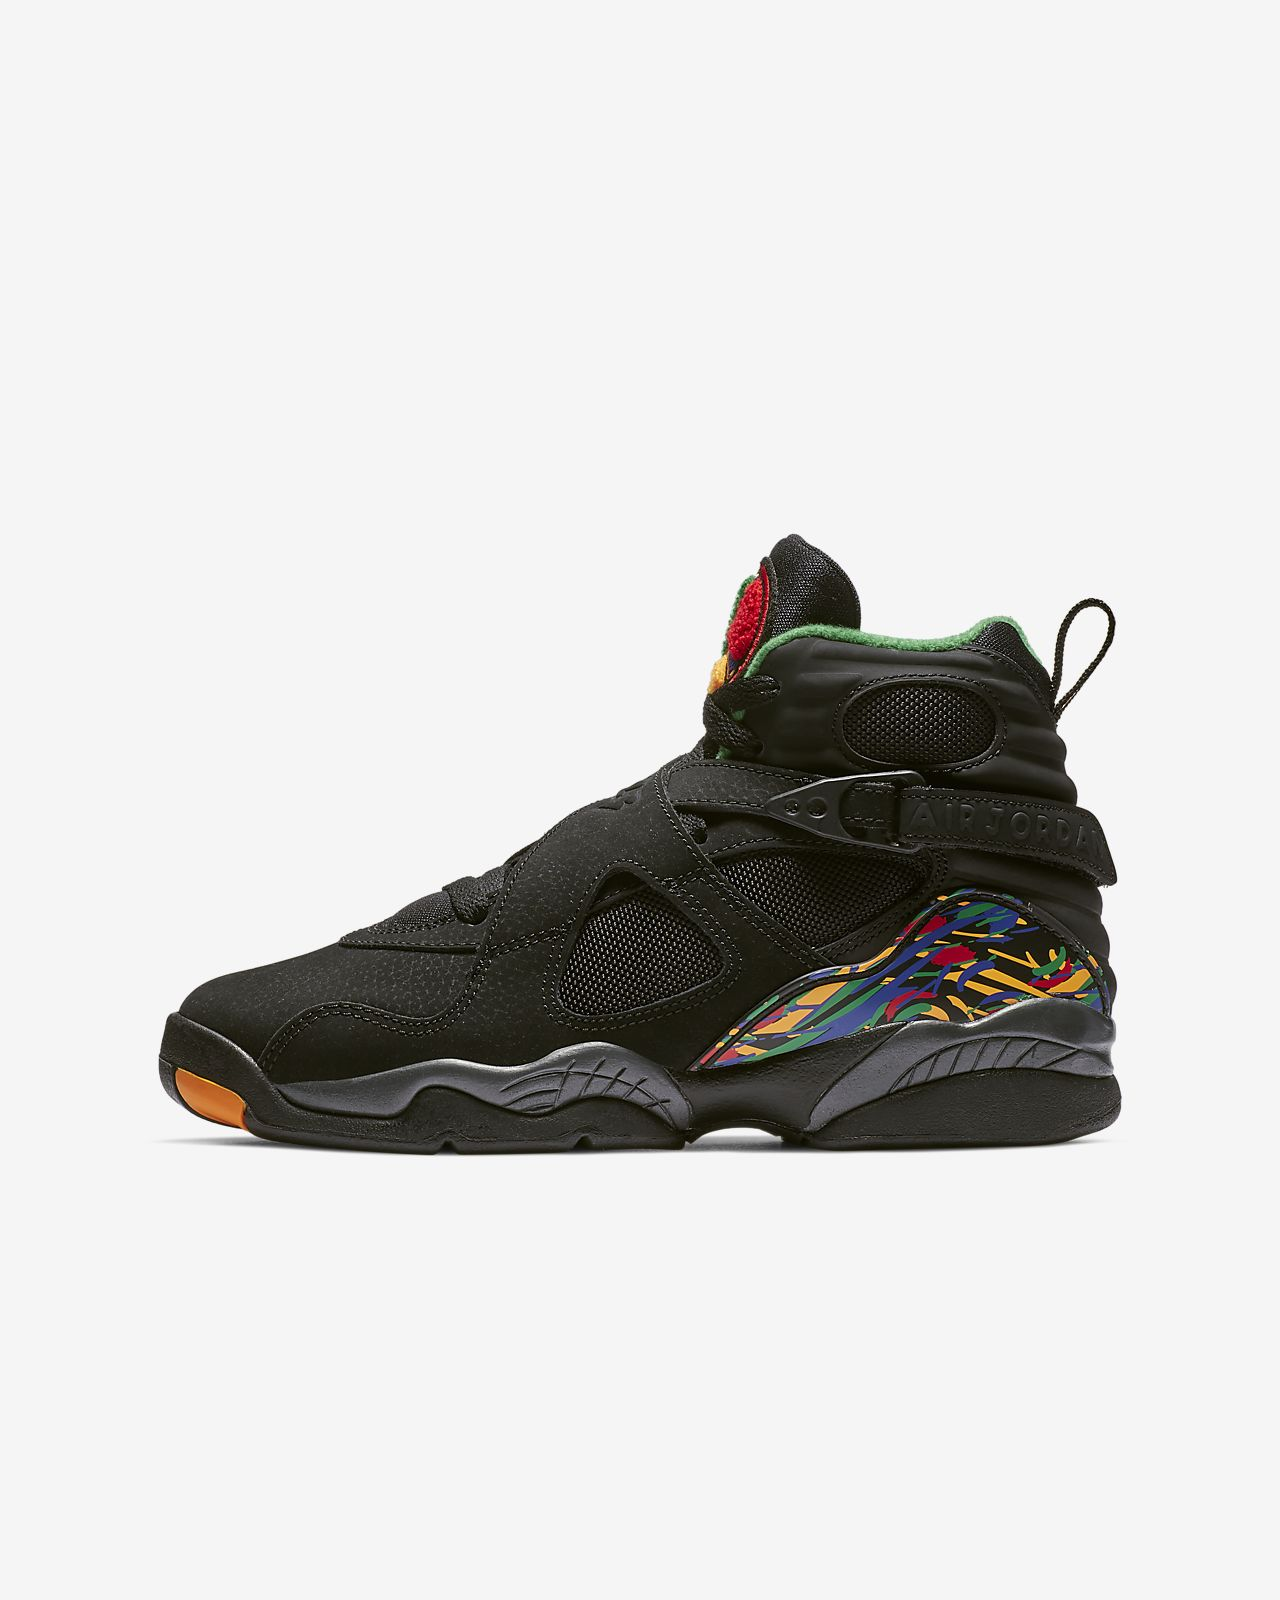 c4f761a38de9 Air Jordan Retro 8 Big Kids  Shoe. Nike.com